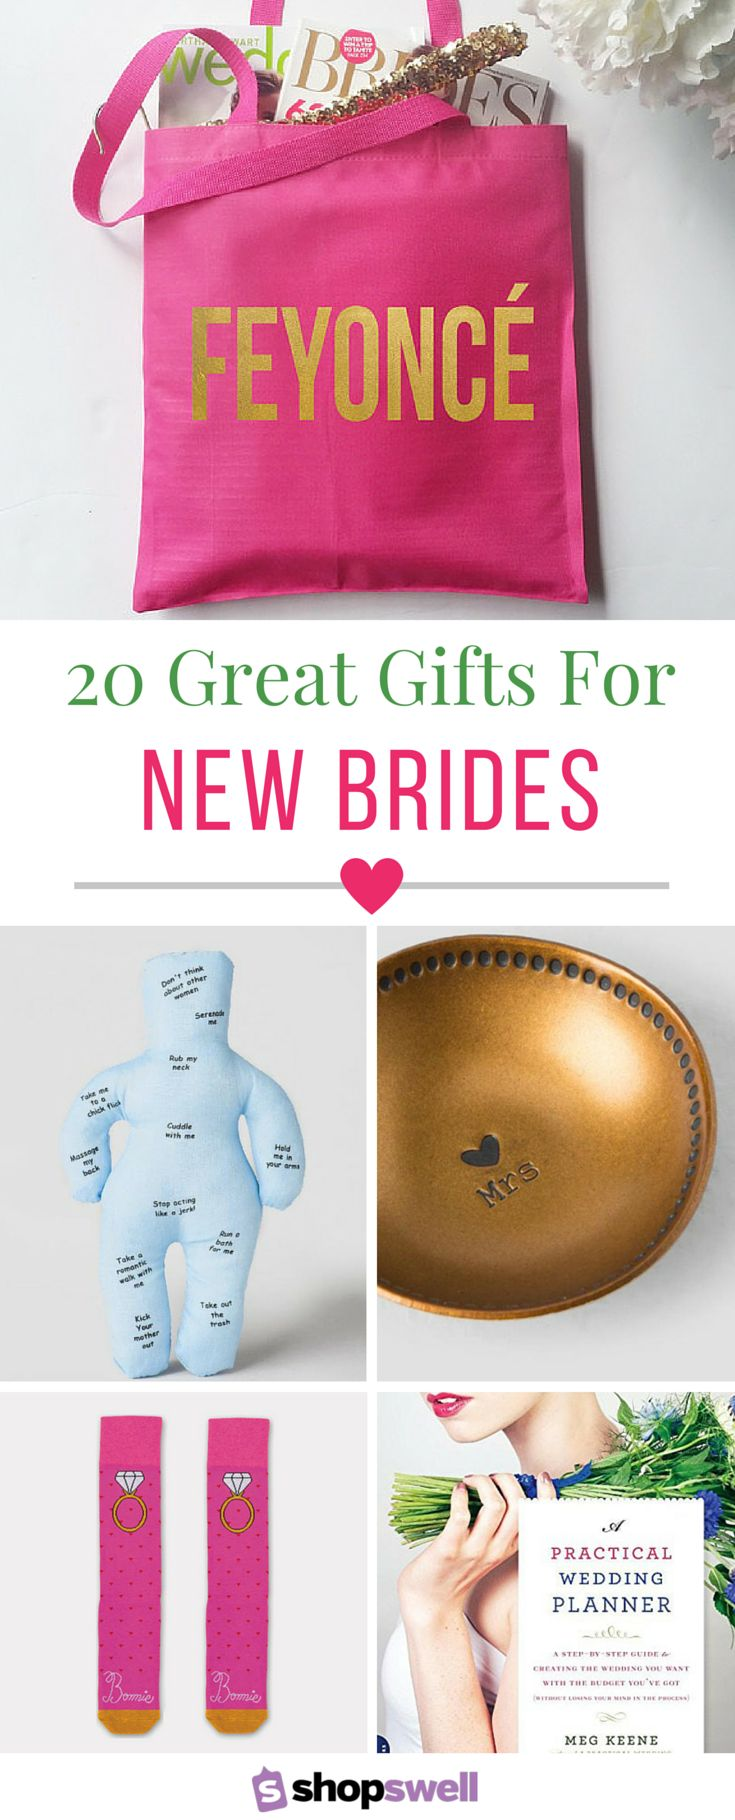 When your BFF gets engaged, you'll stop at nothing to find the chicest, most fab engagement gift possible. Choose one of these 20 gorgeous gifts for the bride and you'll likely land the maid of honor of the year award.